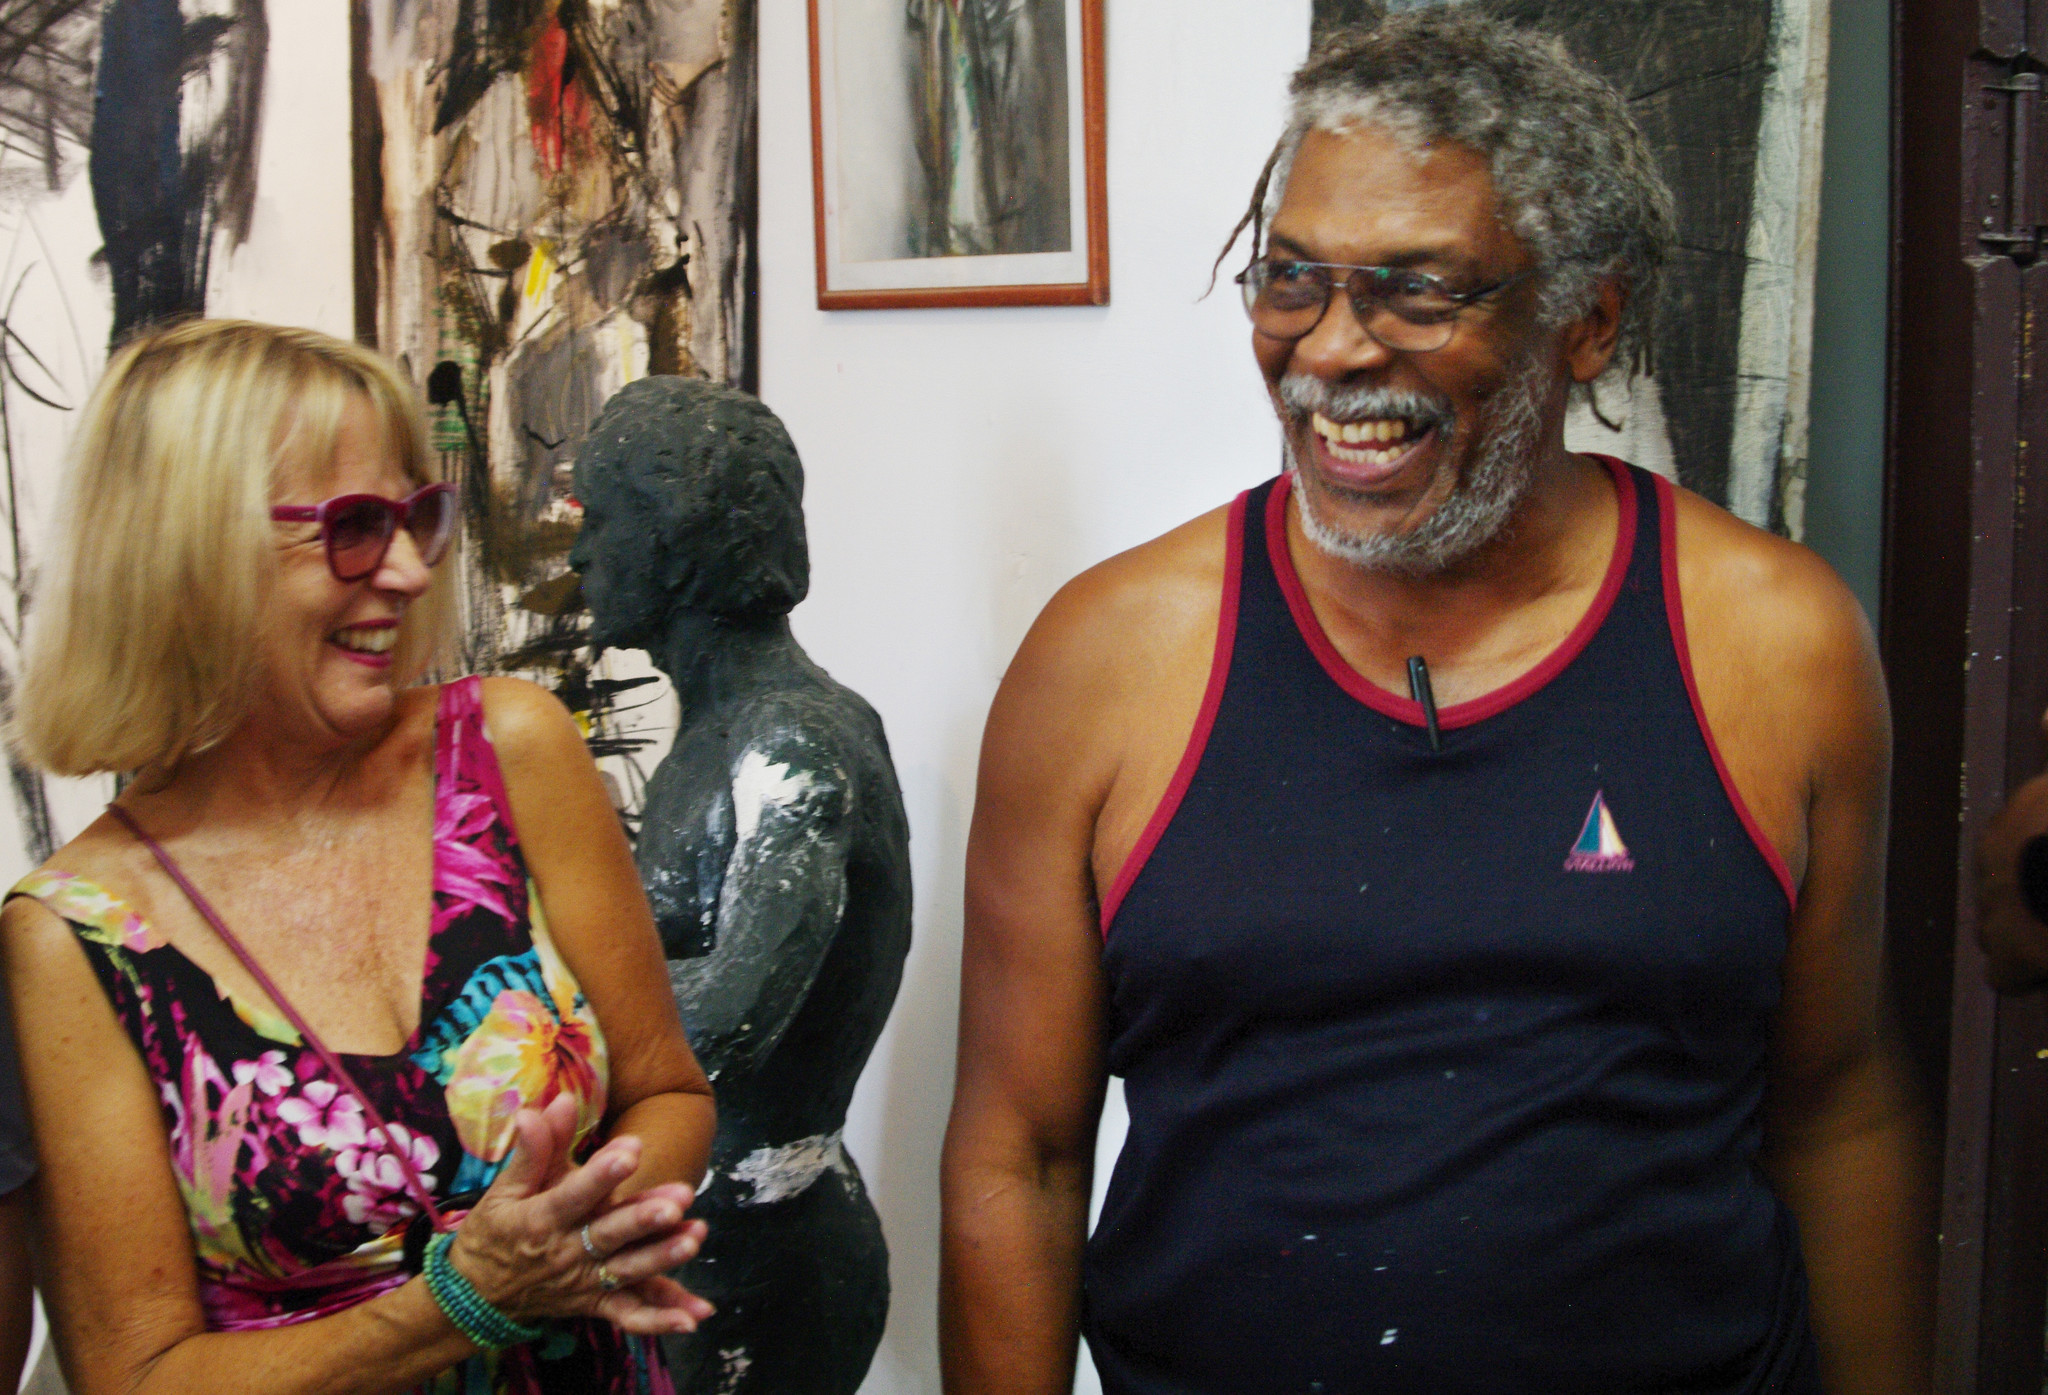 Cuban artist Alberto Lescay at his workshop with Nancy Covey, who brought a group of U.S. visitors to Cuba to explore the country's music and art scene.